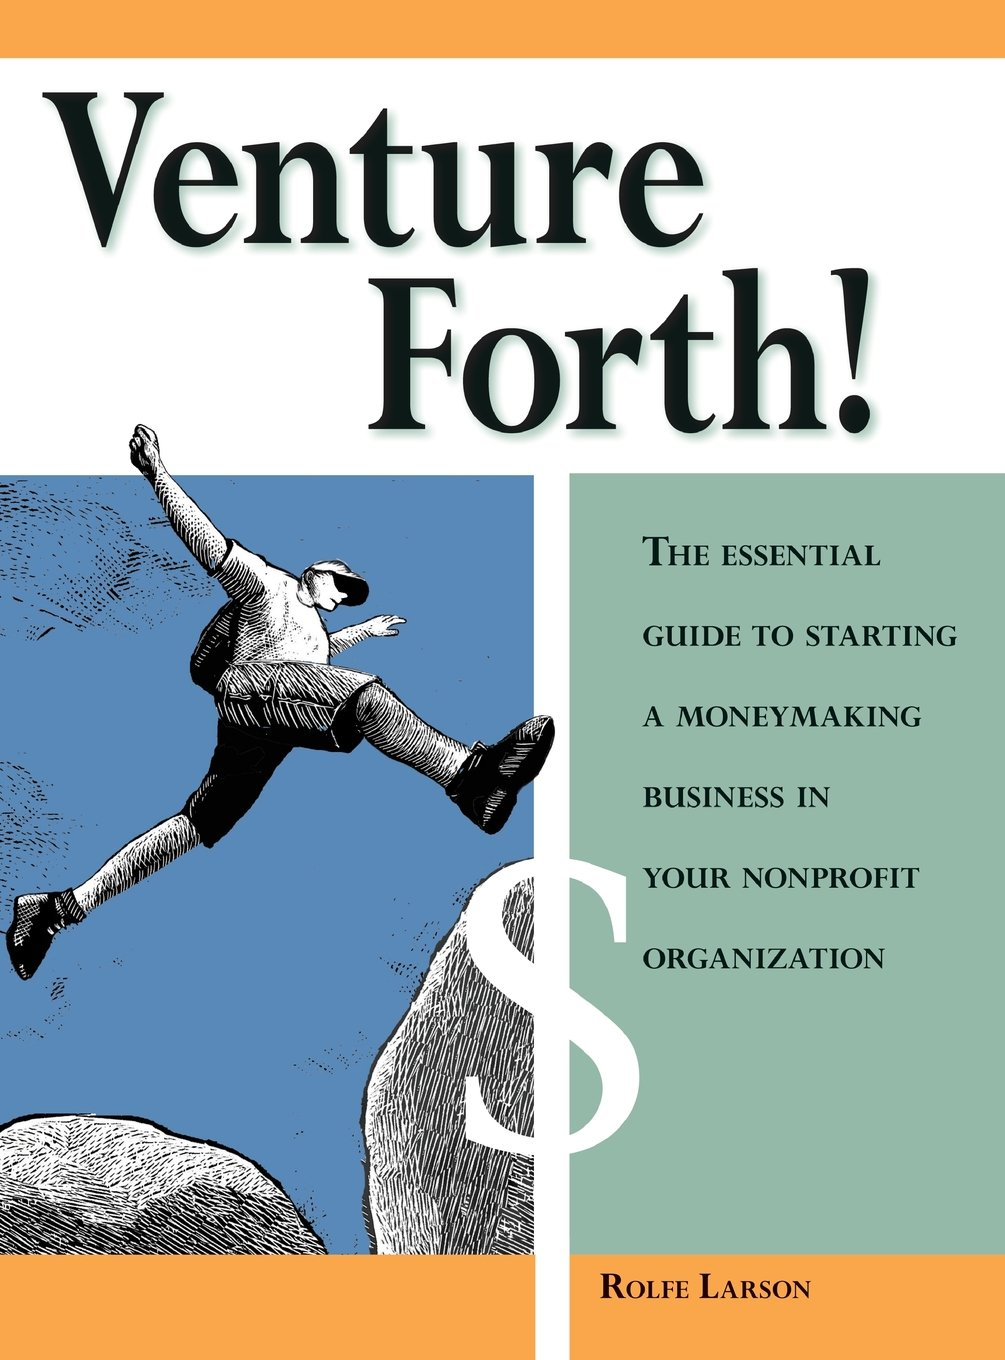 Venture Forth!: The Essential Guide to Starting a Moneymaking Business in Your Nonprofit Organization PDF